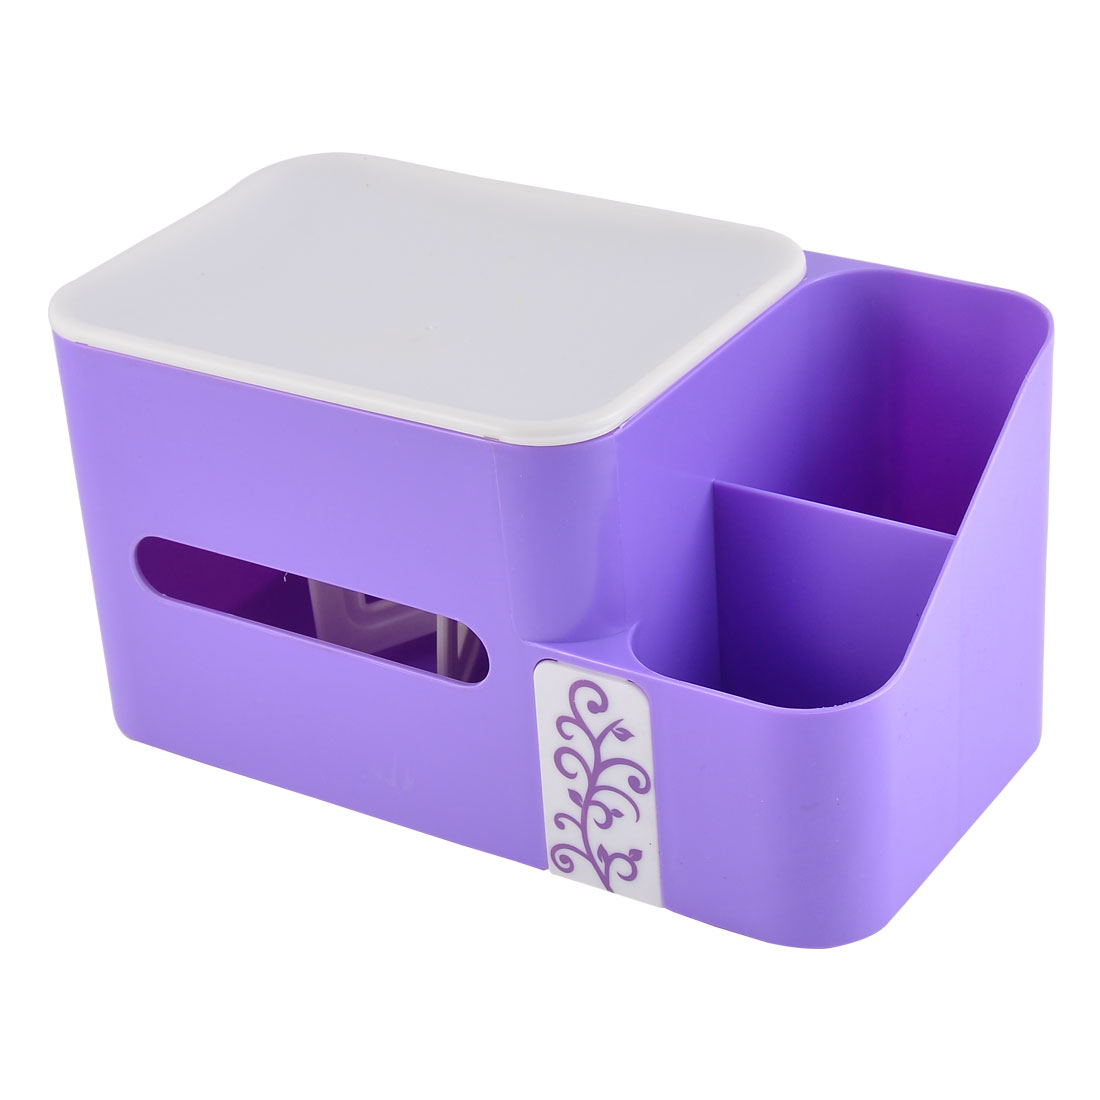 Home Plastic Rectangle Shaped Paper Napkin Tissue Box Container Purple